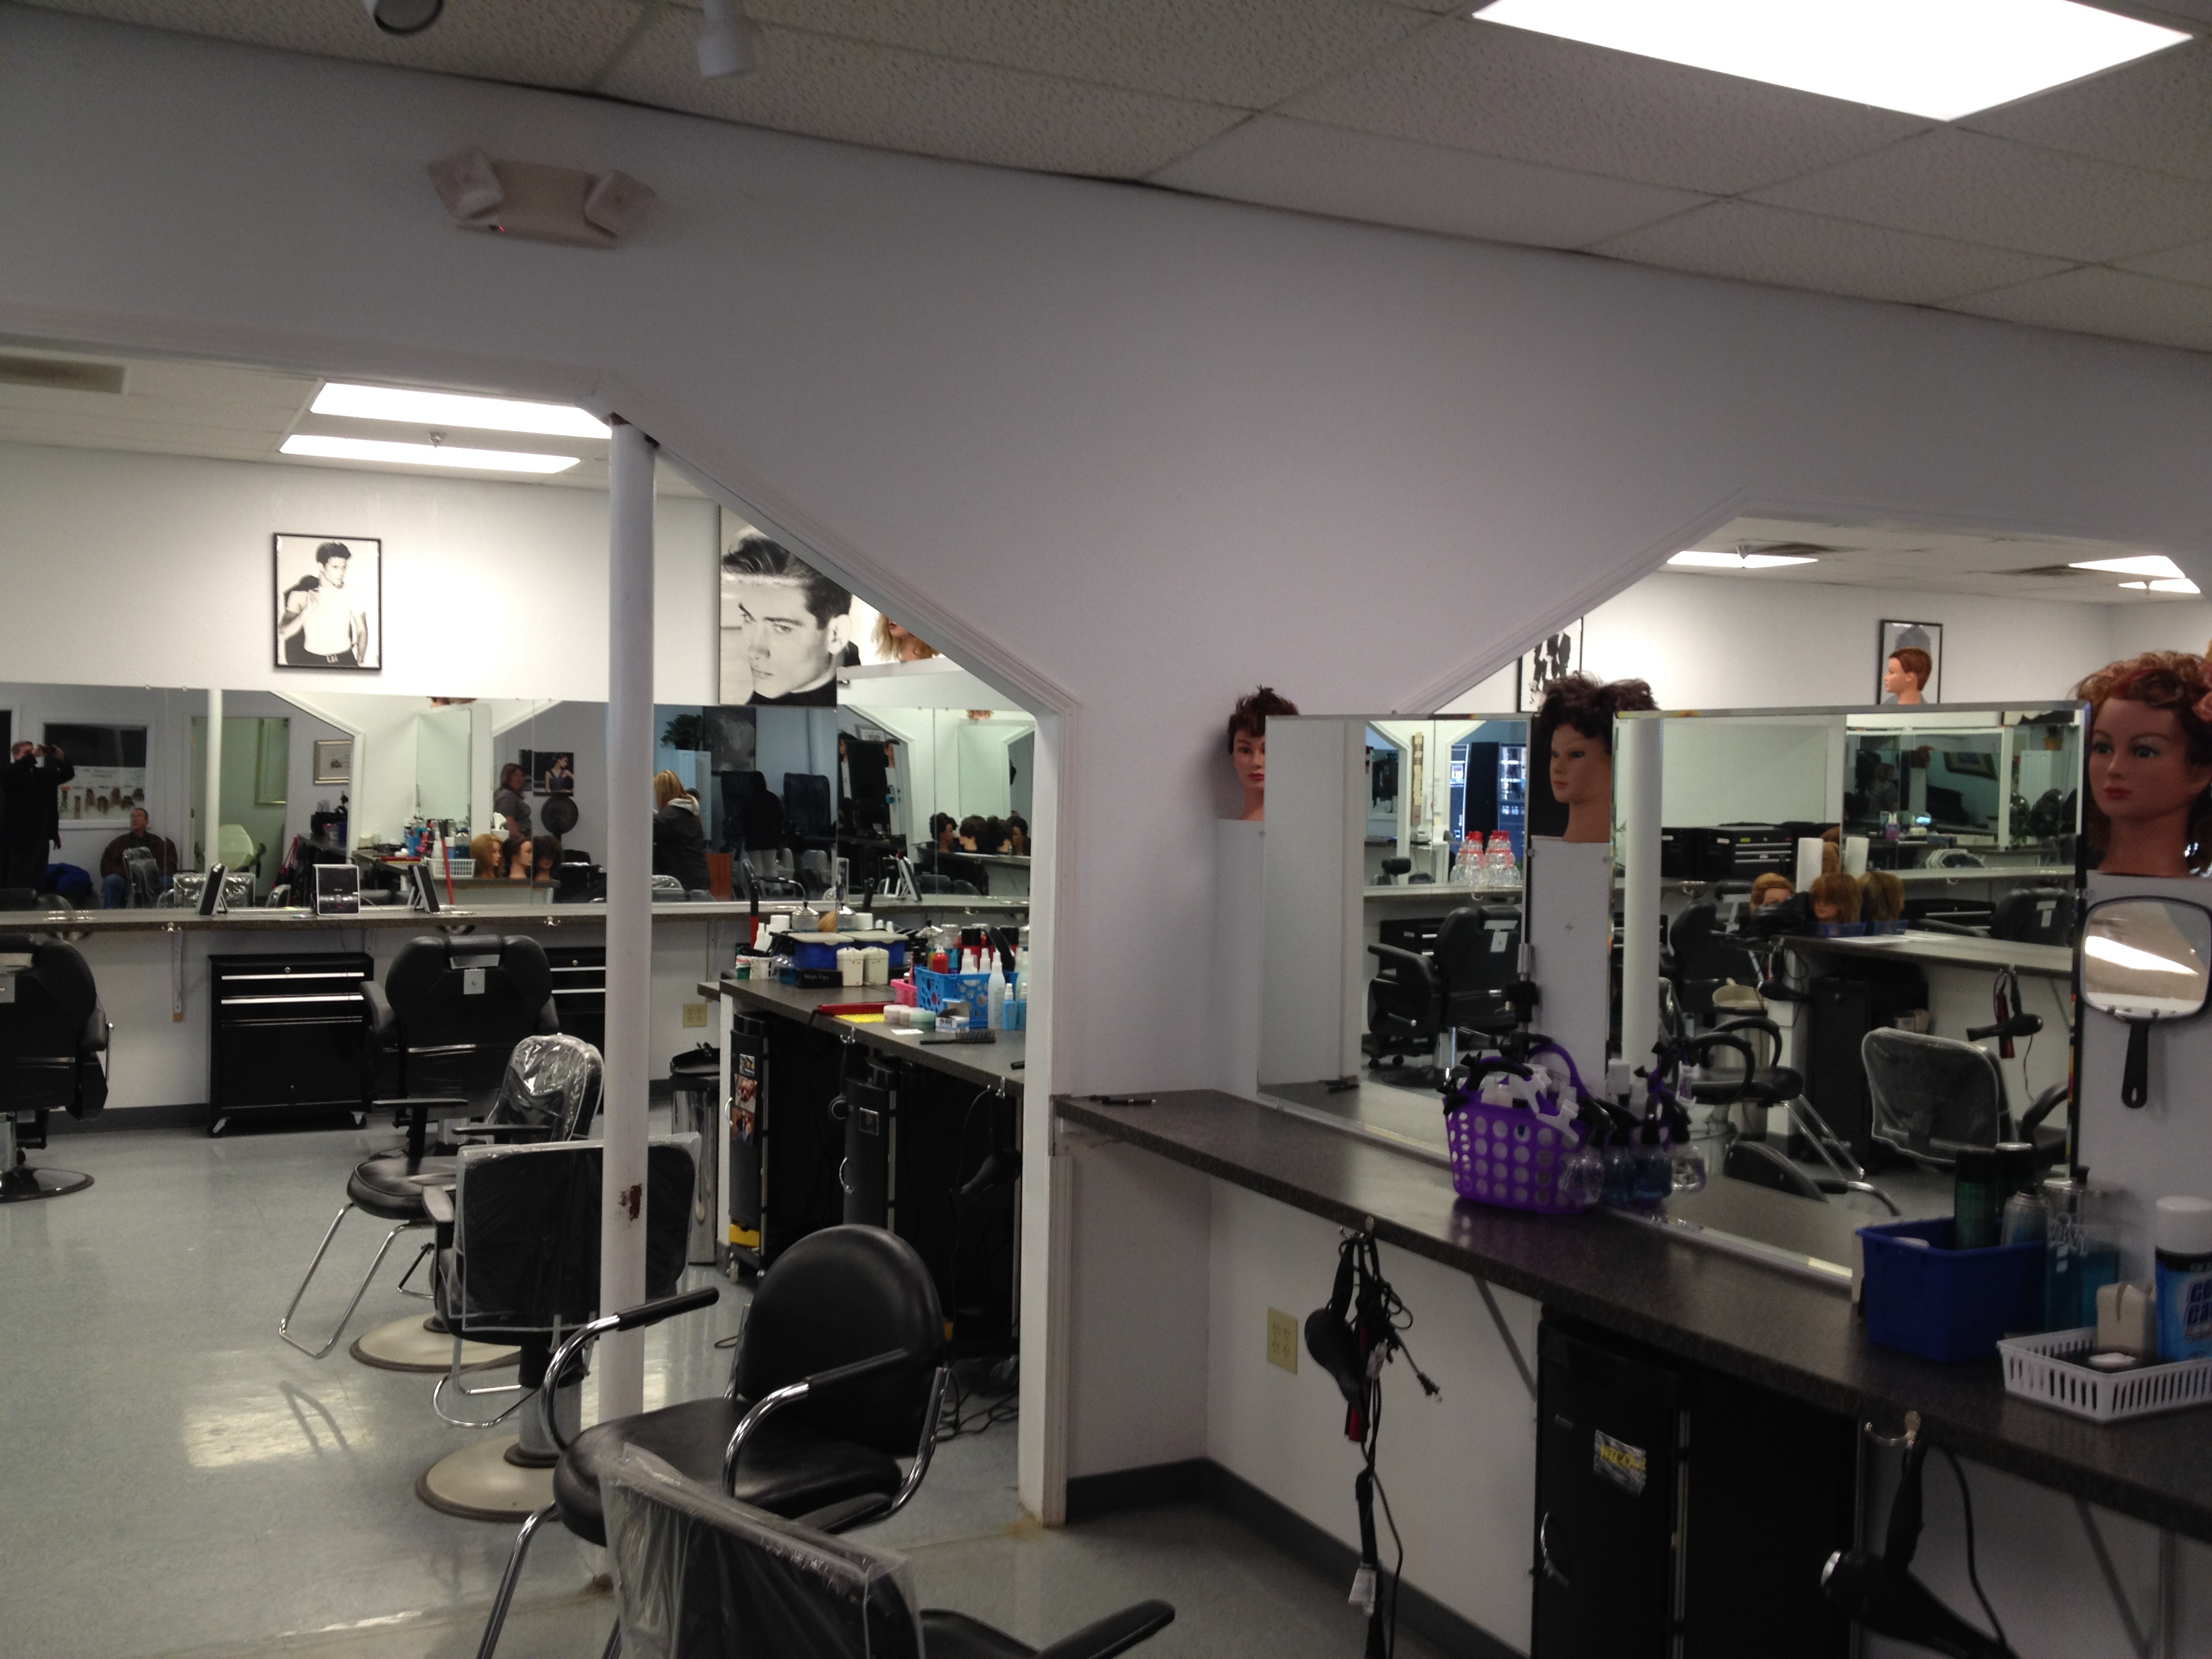 St joseph beauty university of hair nail design 10 for Tattoo parlors in st joseph mo